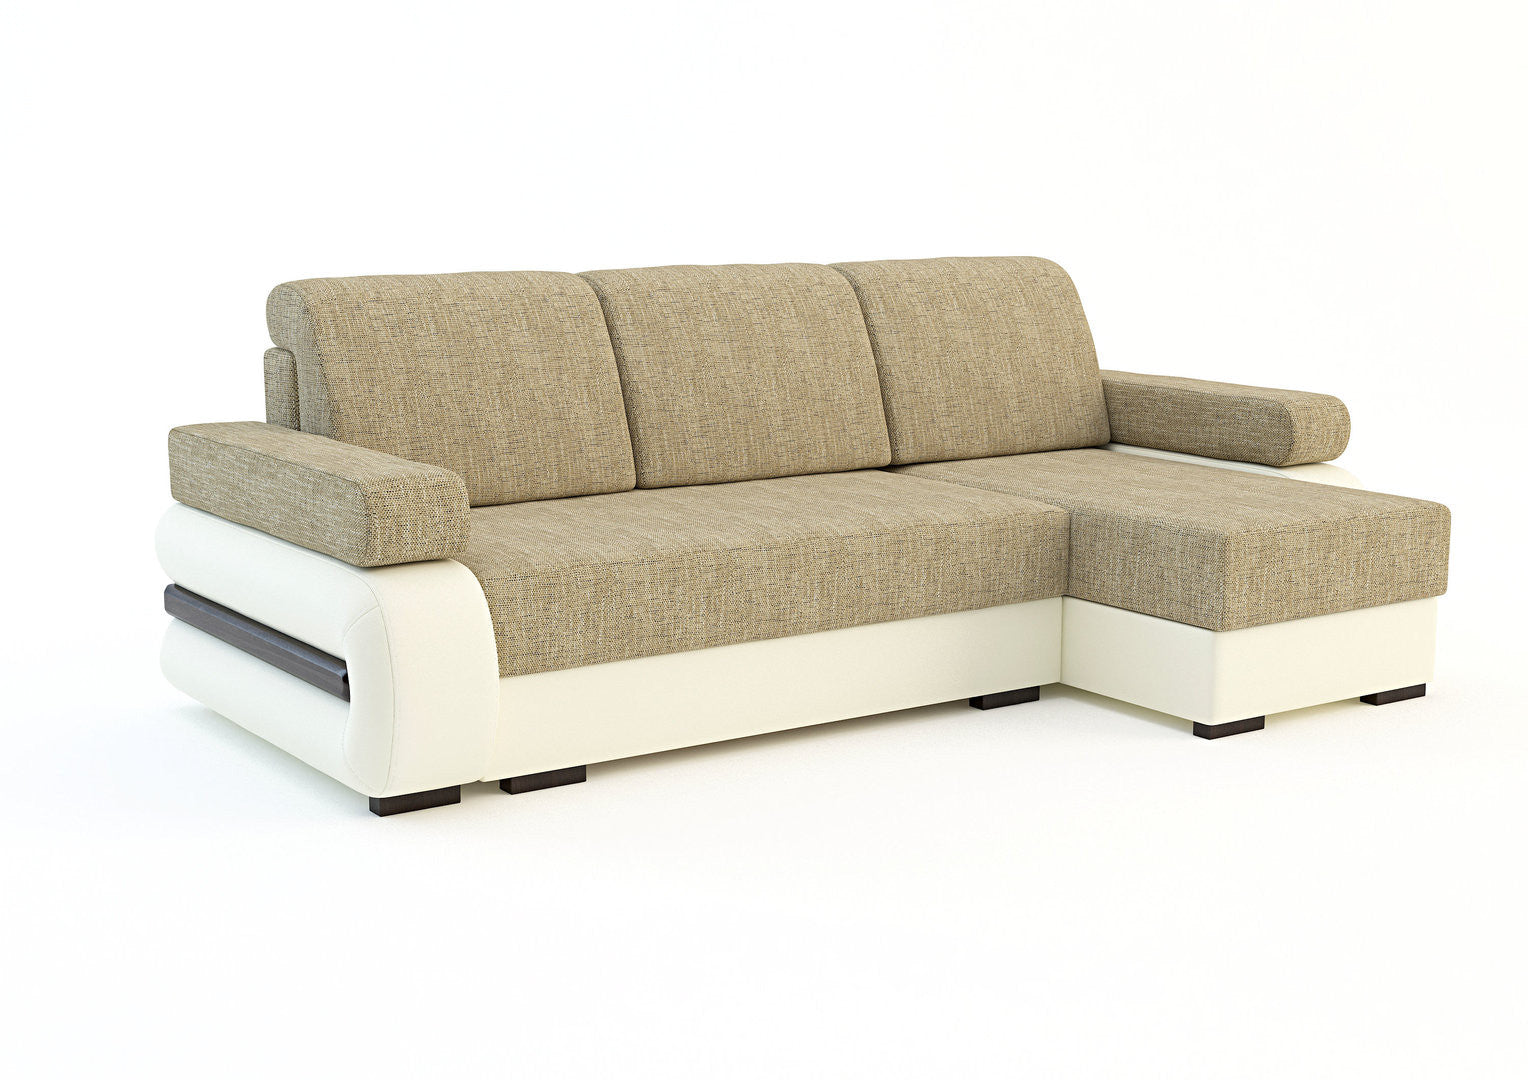 Corner sofa bed tigra for Sofa bed dimensions unfolded